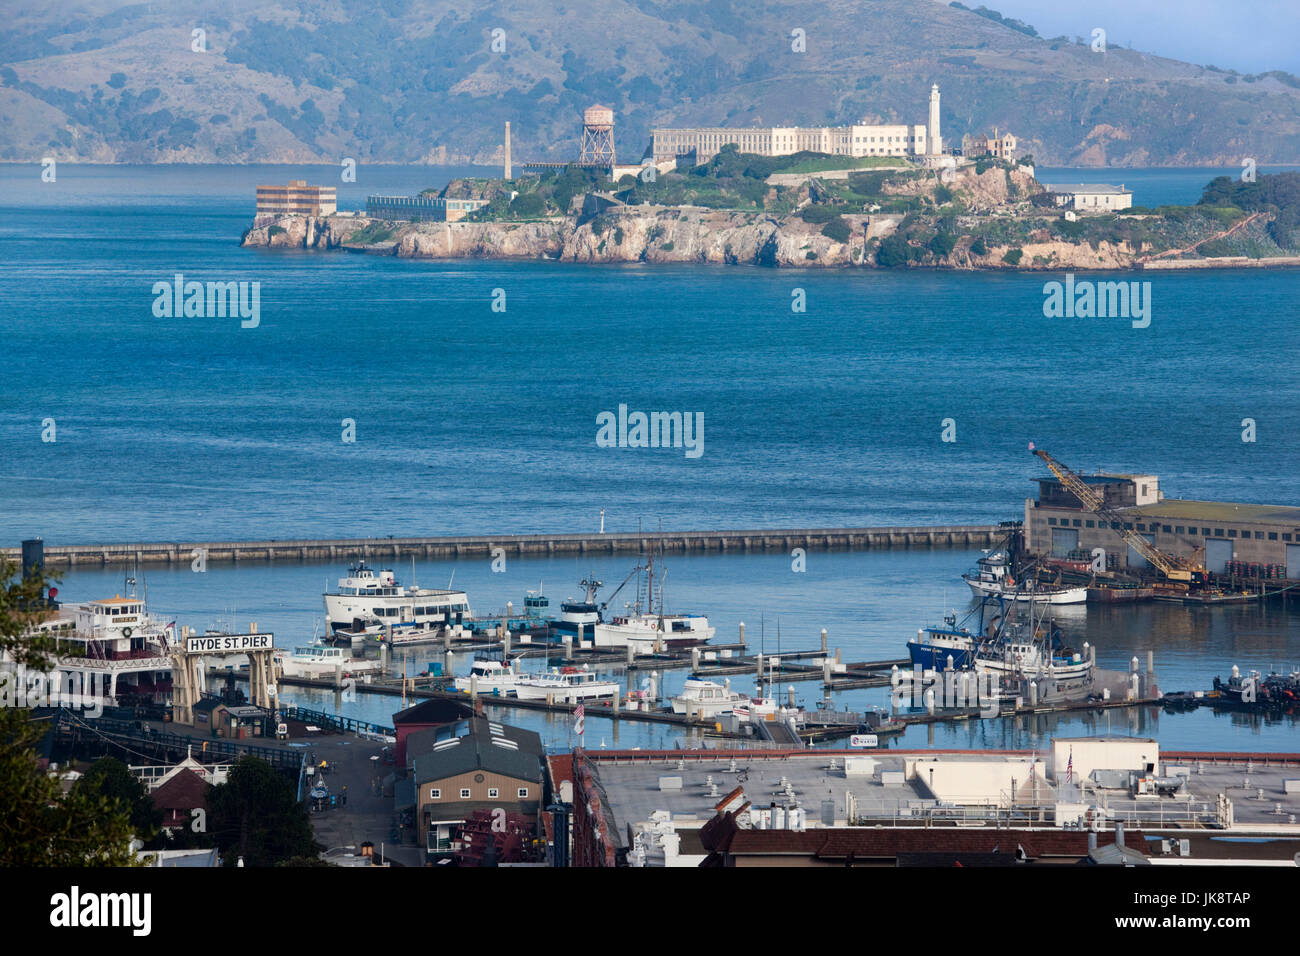 États-unis, Californie, San Francisco, Embarcadero, portrait de l'Île Alcatraz de Hyde Street Photo Stock